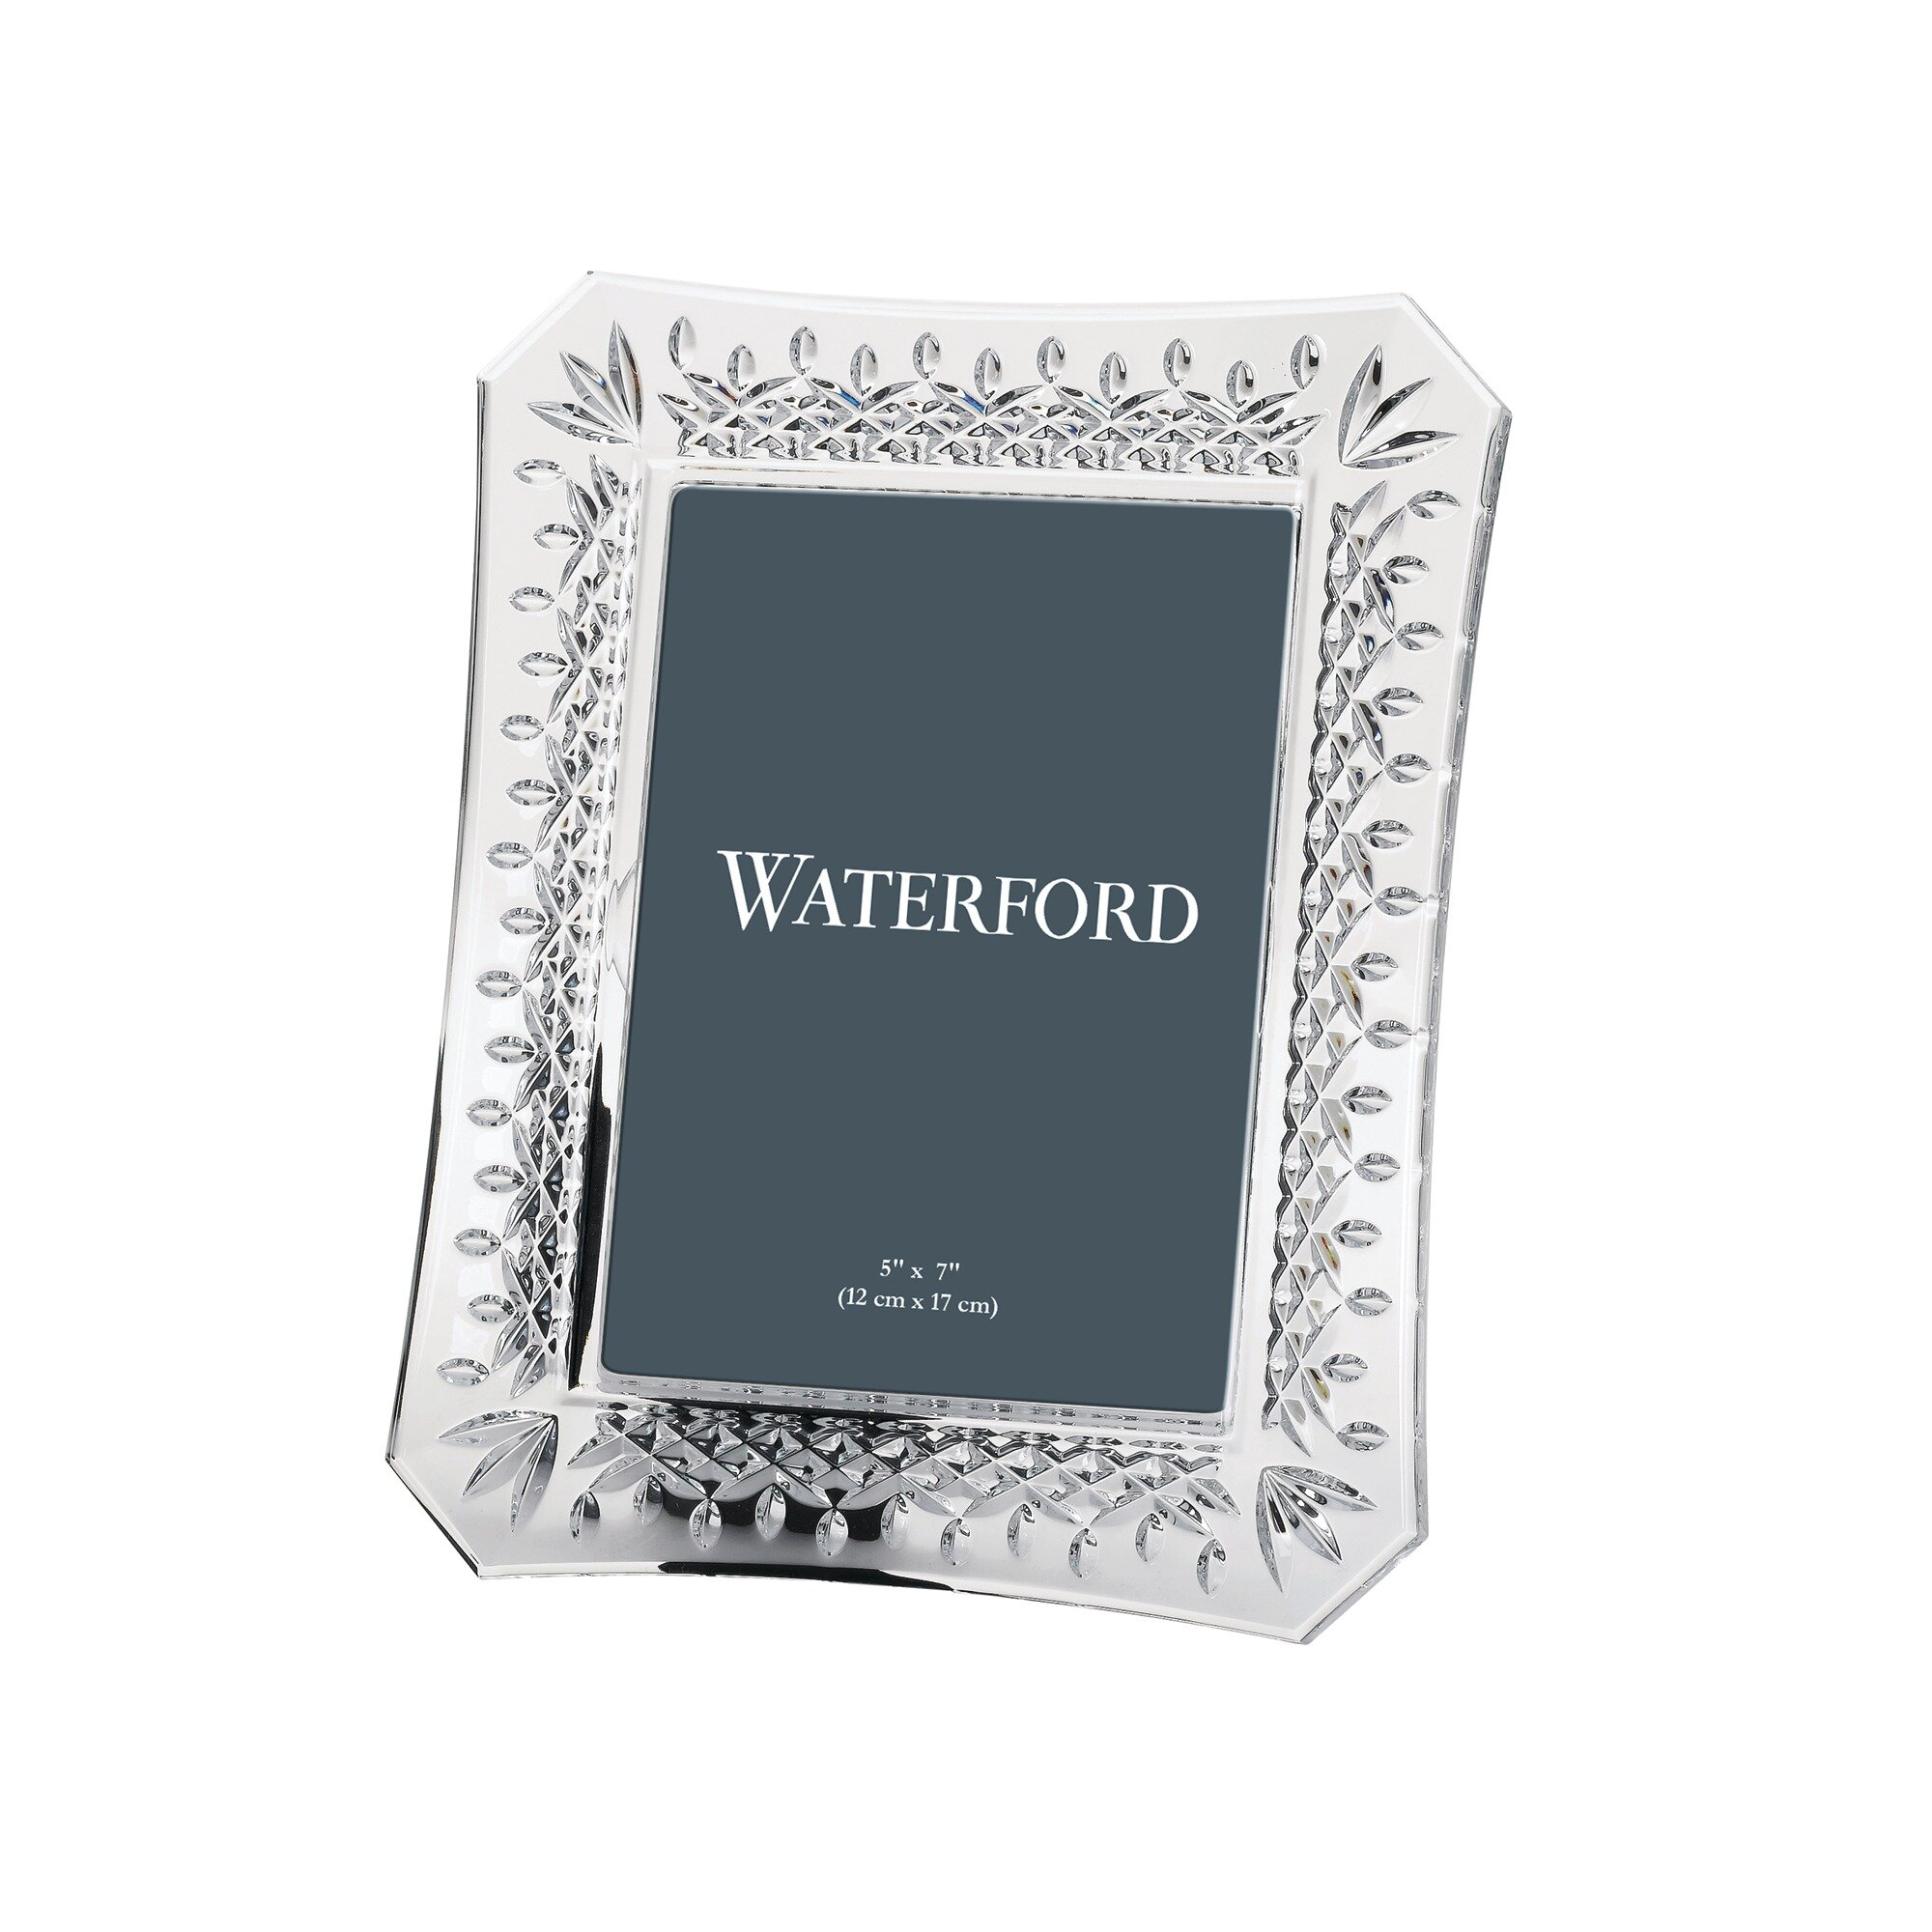 Waterford Lismore Picture Frame & Reviews | Wayfair